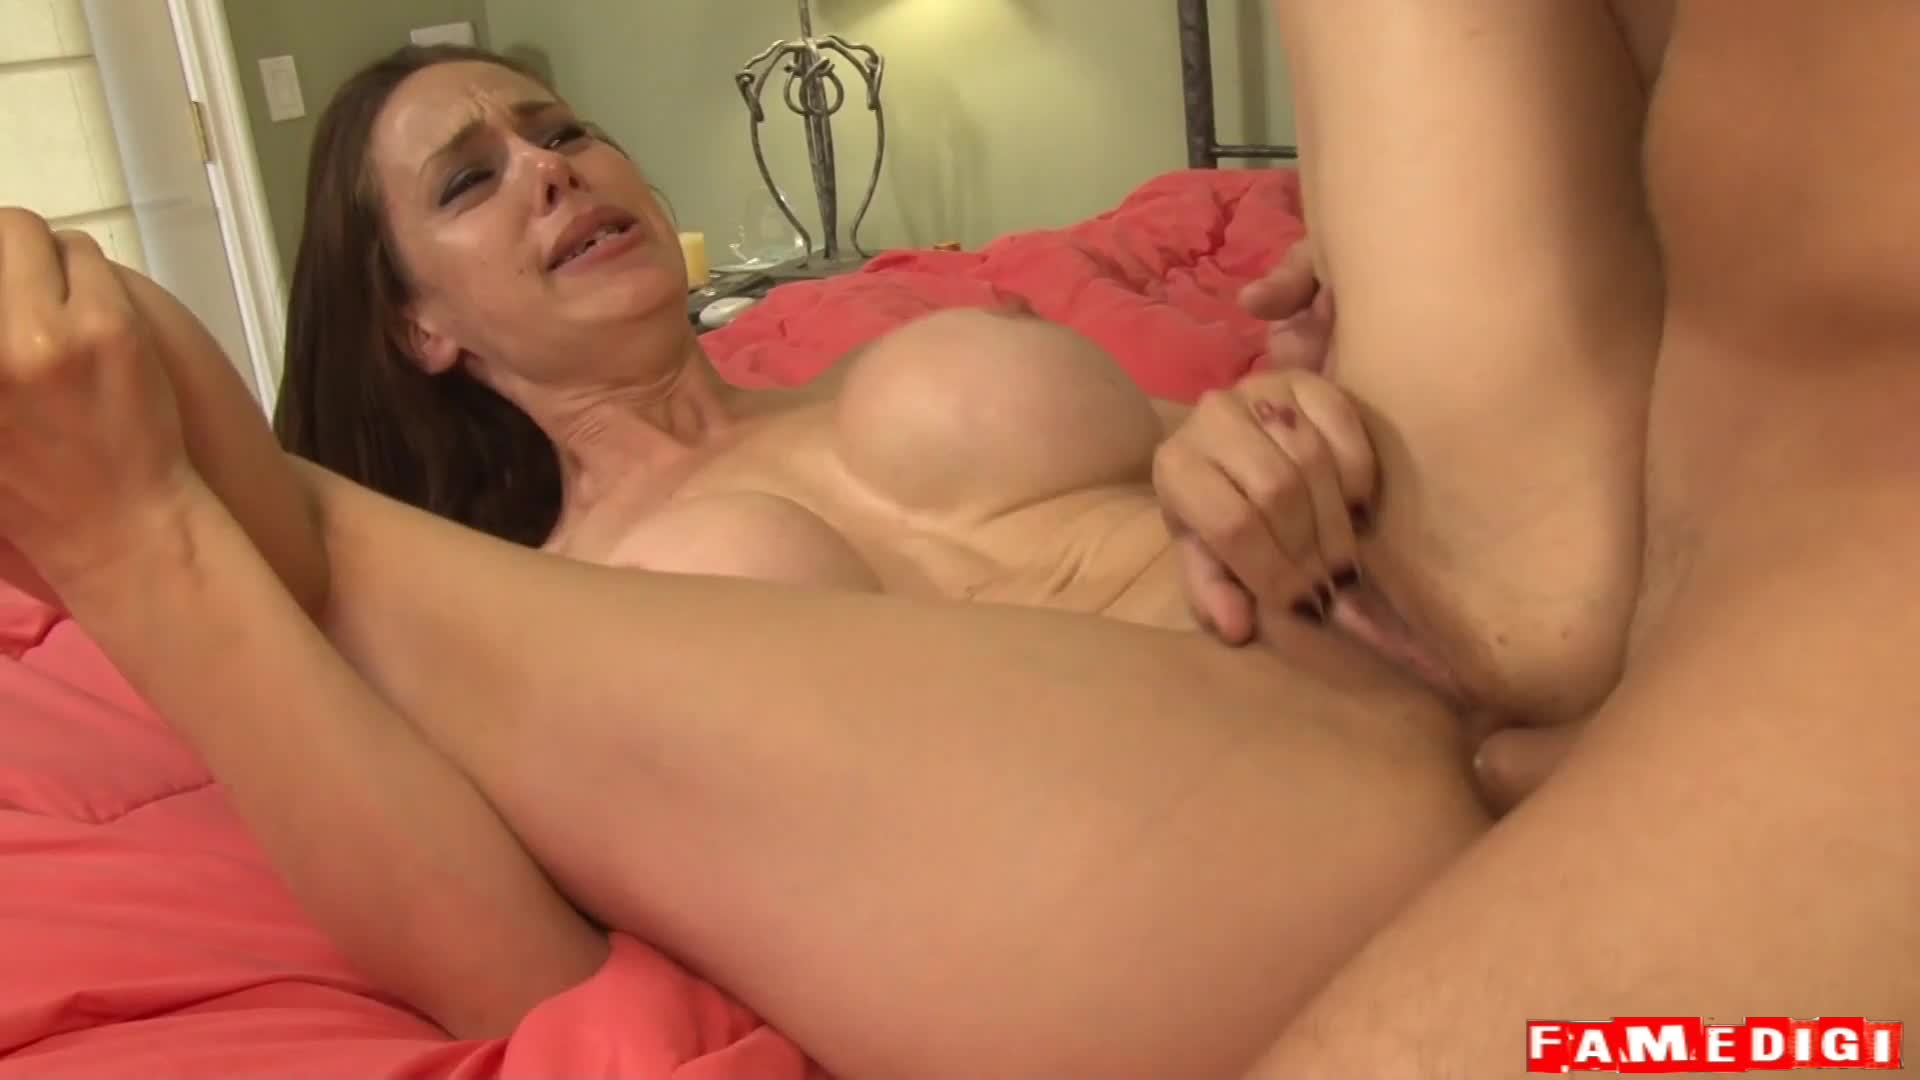 My Wife Caught Me Assfucking Her Mother 5 Porn my wife caught me assfucking her mother p09 sc04 part 5